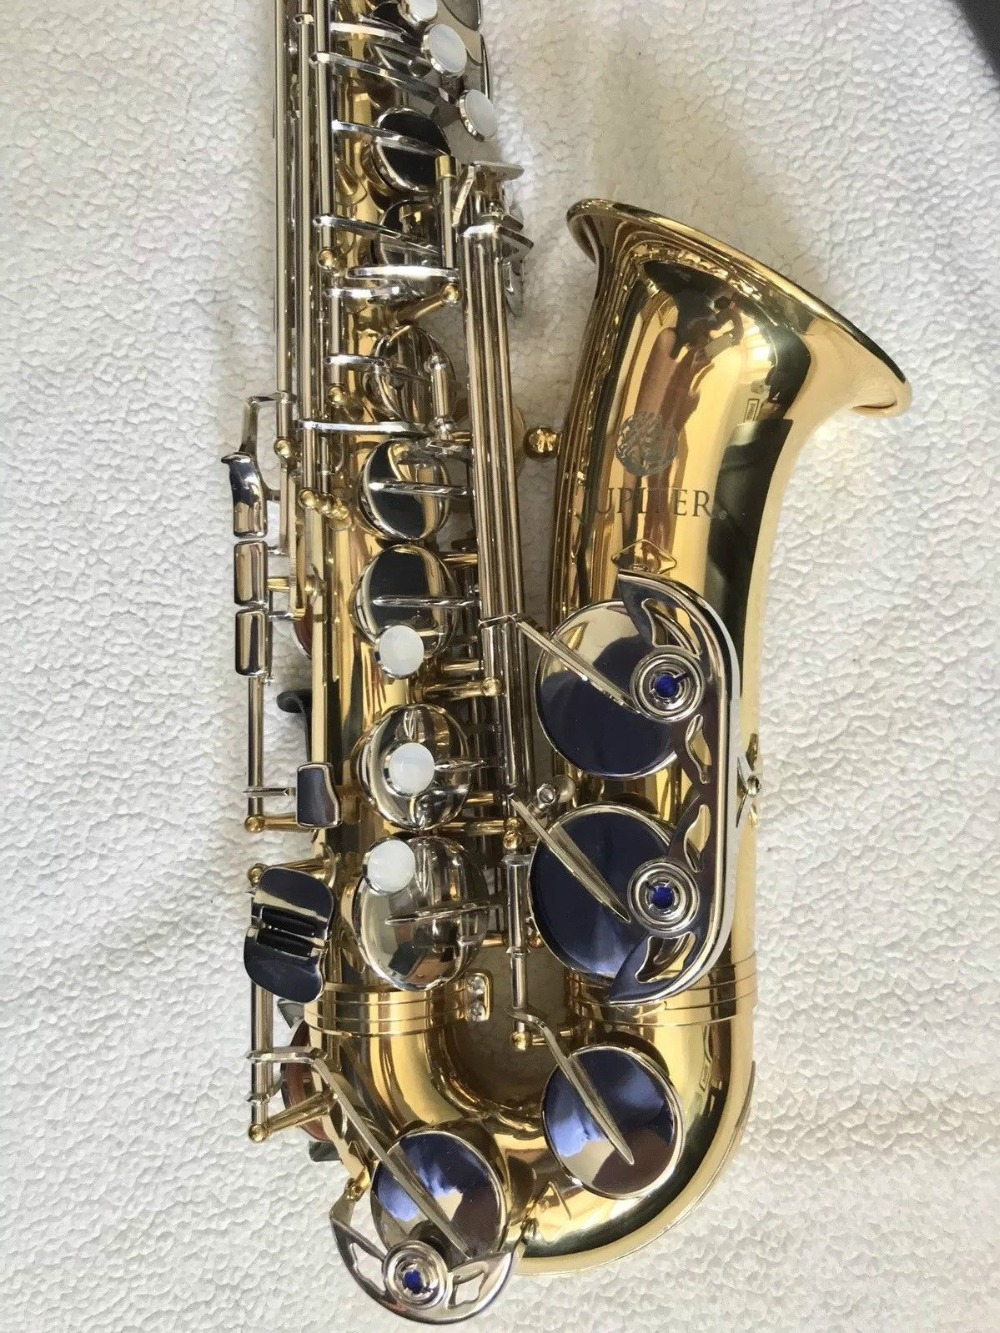 Jupiter JAS 710 Alto Eb Tune Instrument Saxophone Brass Body Gold Lacquer Nickel Plated Key E Flat For Students With Canvas Case 2015 new top class china wuyi black tea jinjunmei tea 250g organic tea gift packing warm stomach chinese tea free shippimg